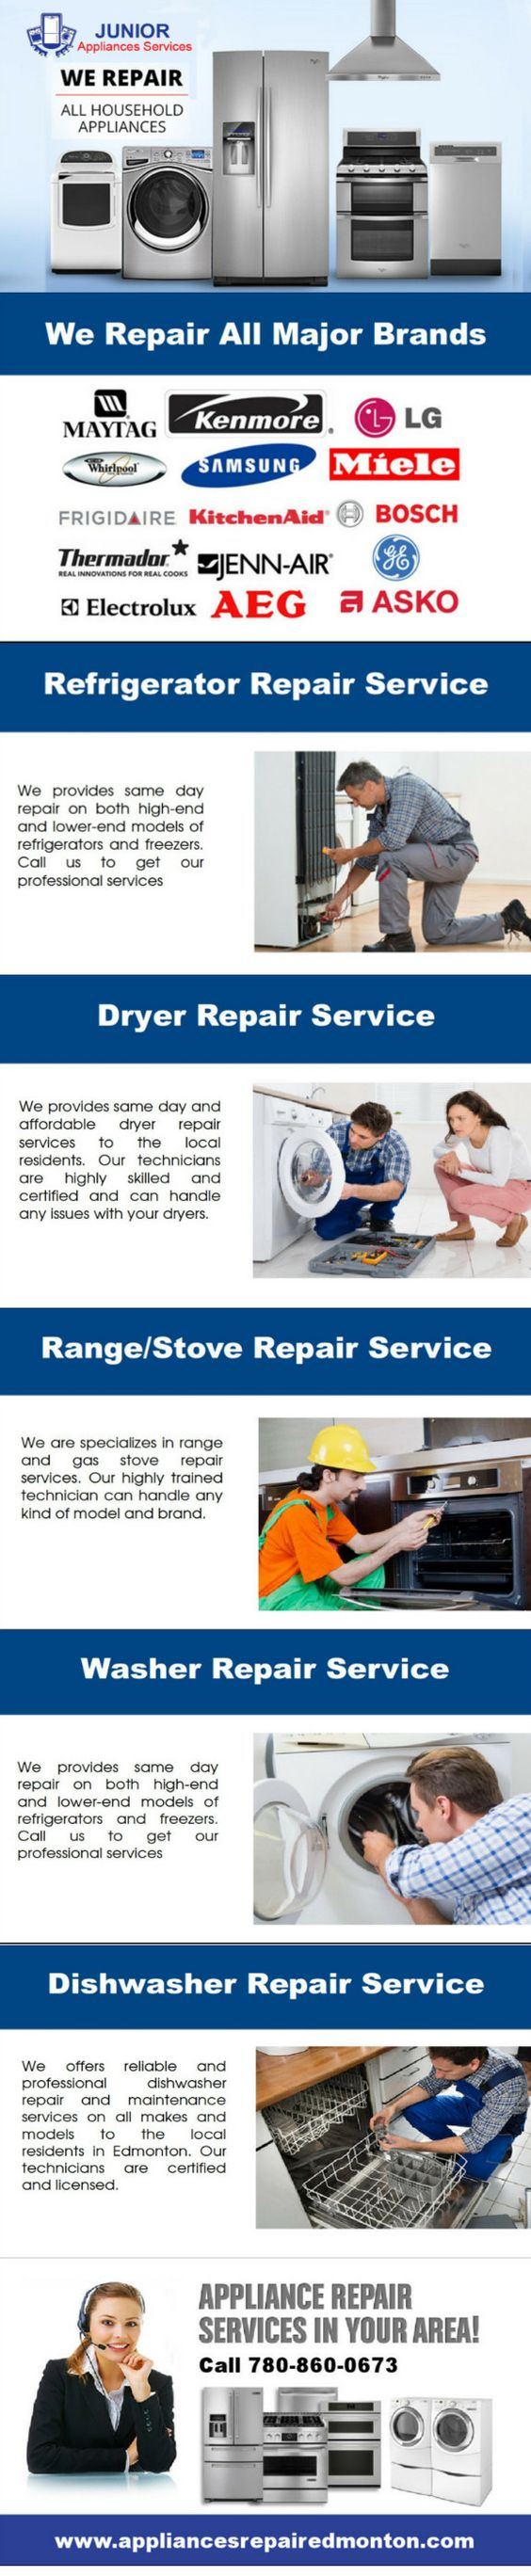 Junior appliances repair edmonton juniorappliance on pinterest